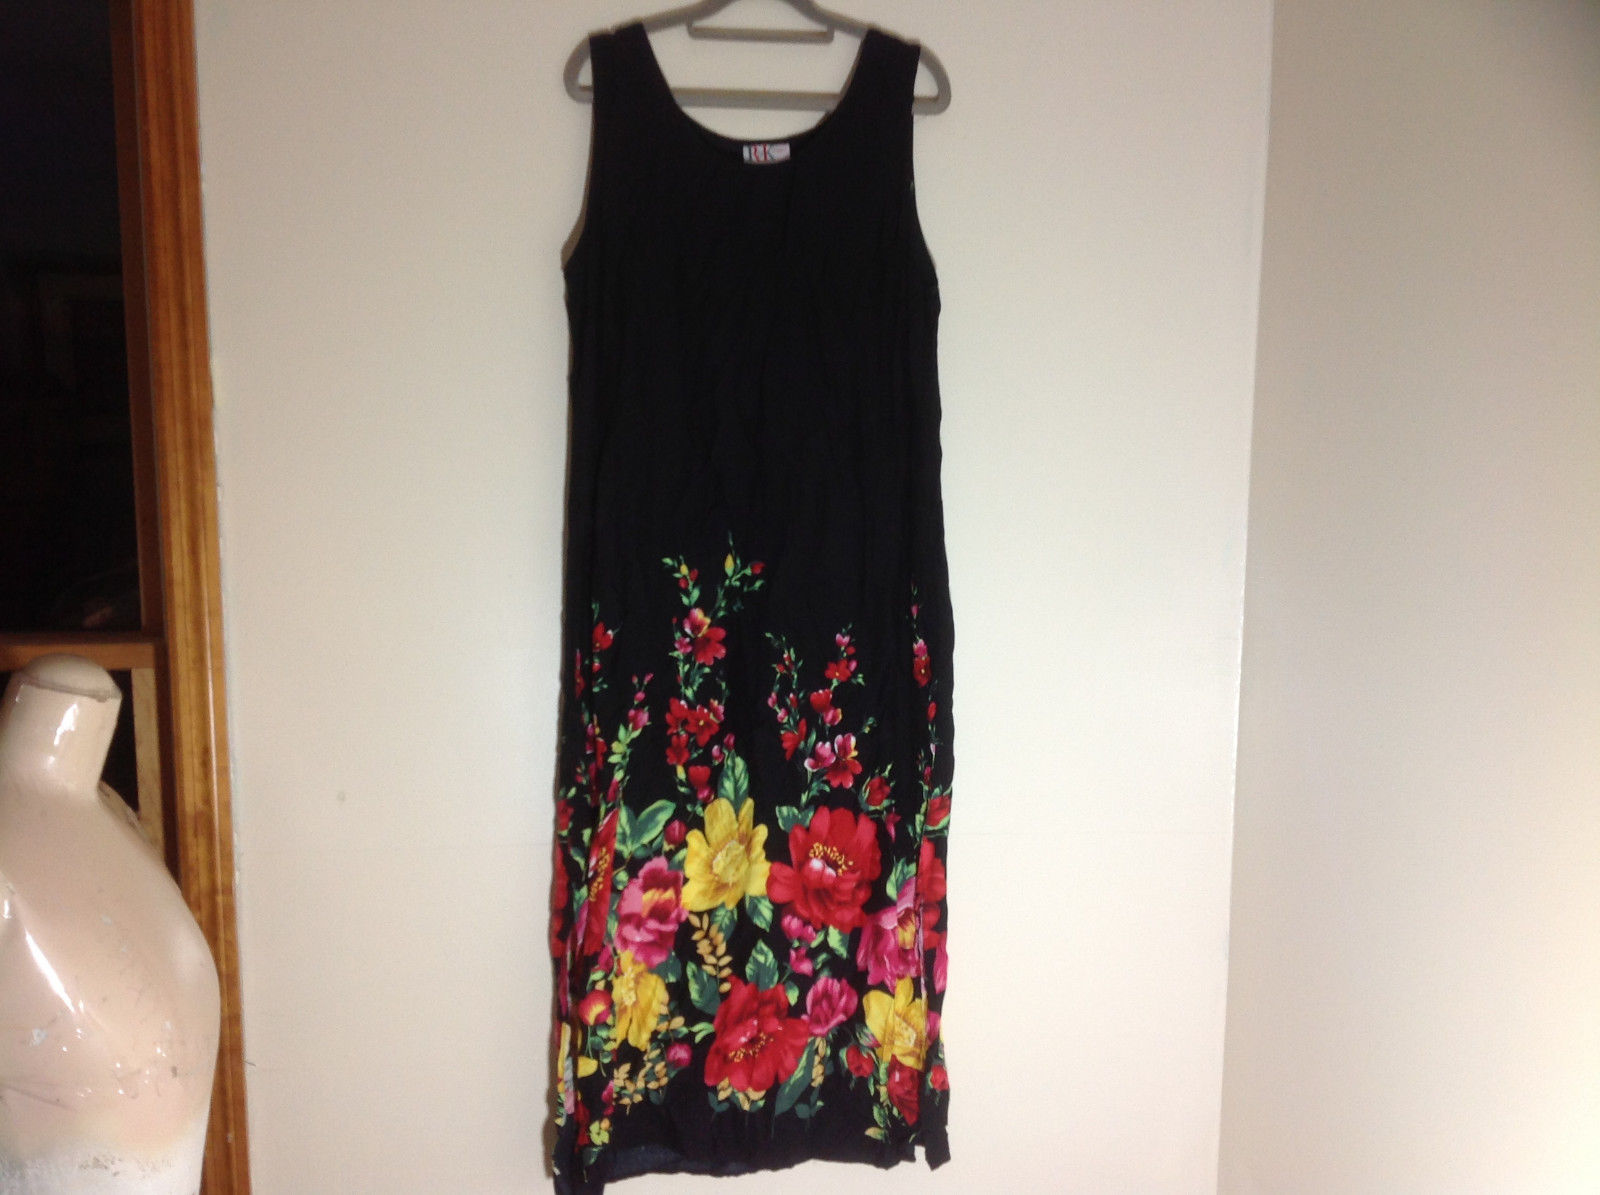 R & K Black Beach Cover Up Dress Floral Decoration at Bottom of Dress Size 16